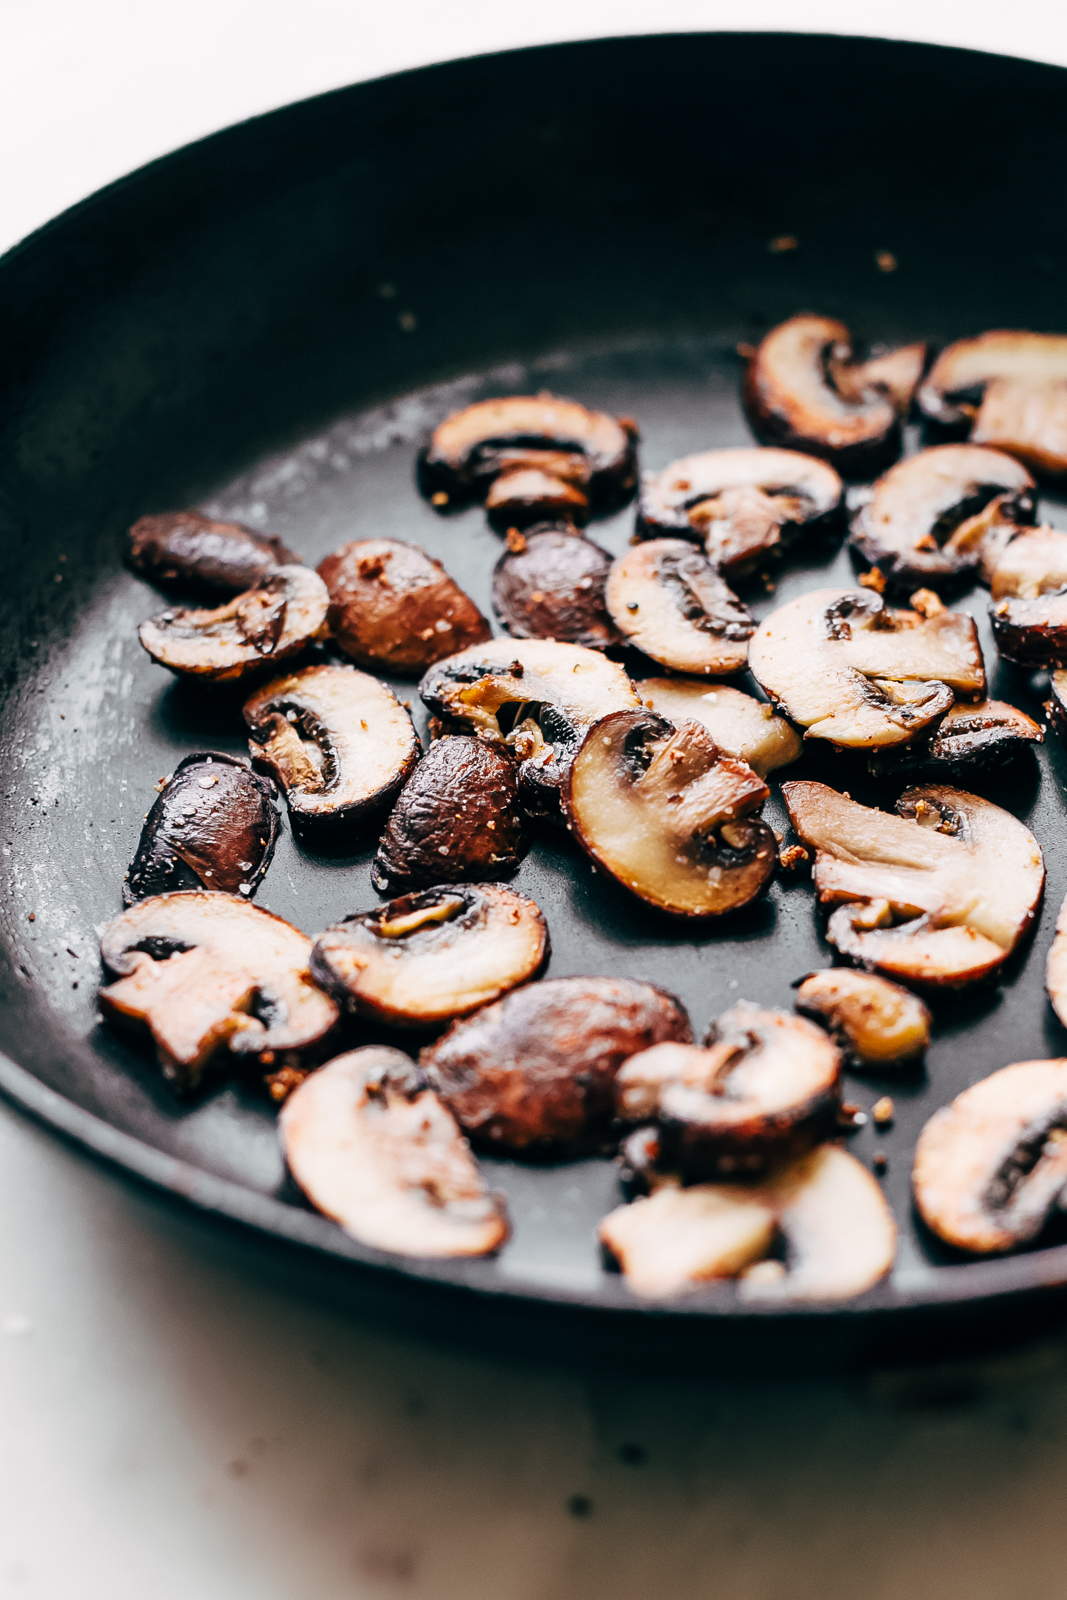 sautéed criminology mushrooms in frying pan